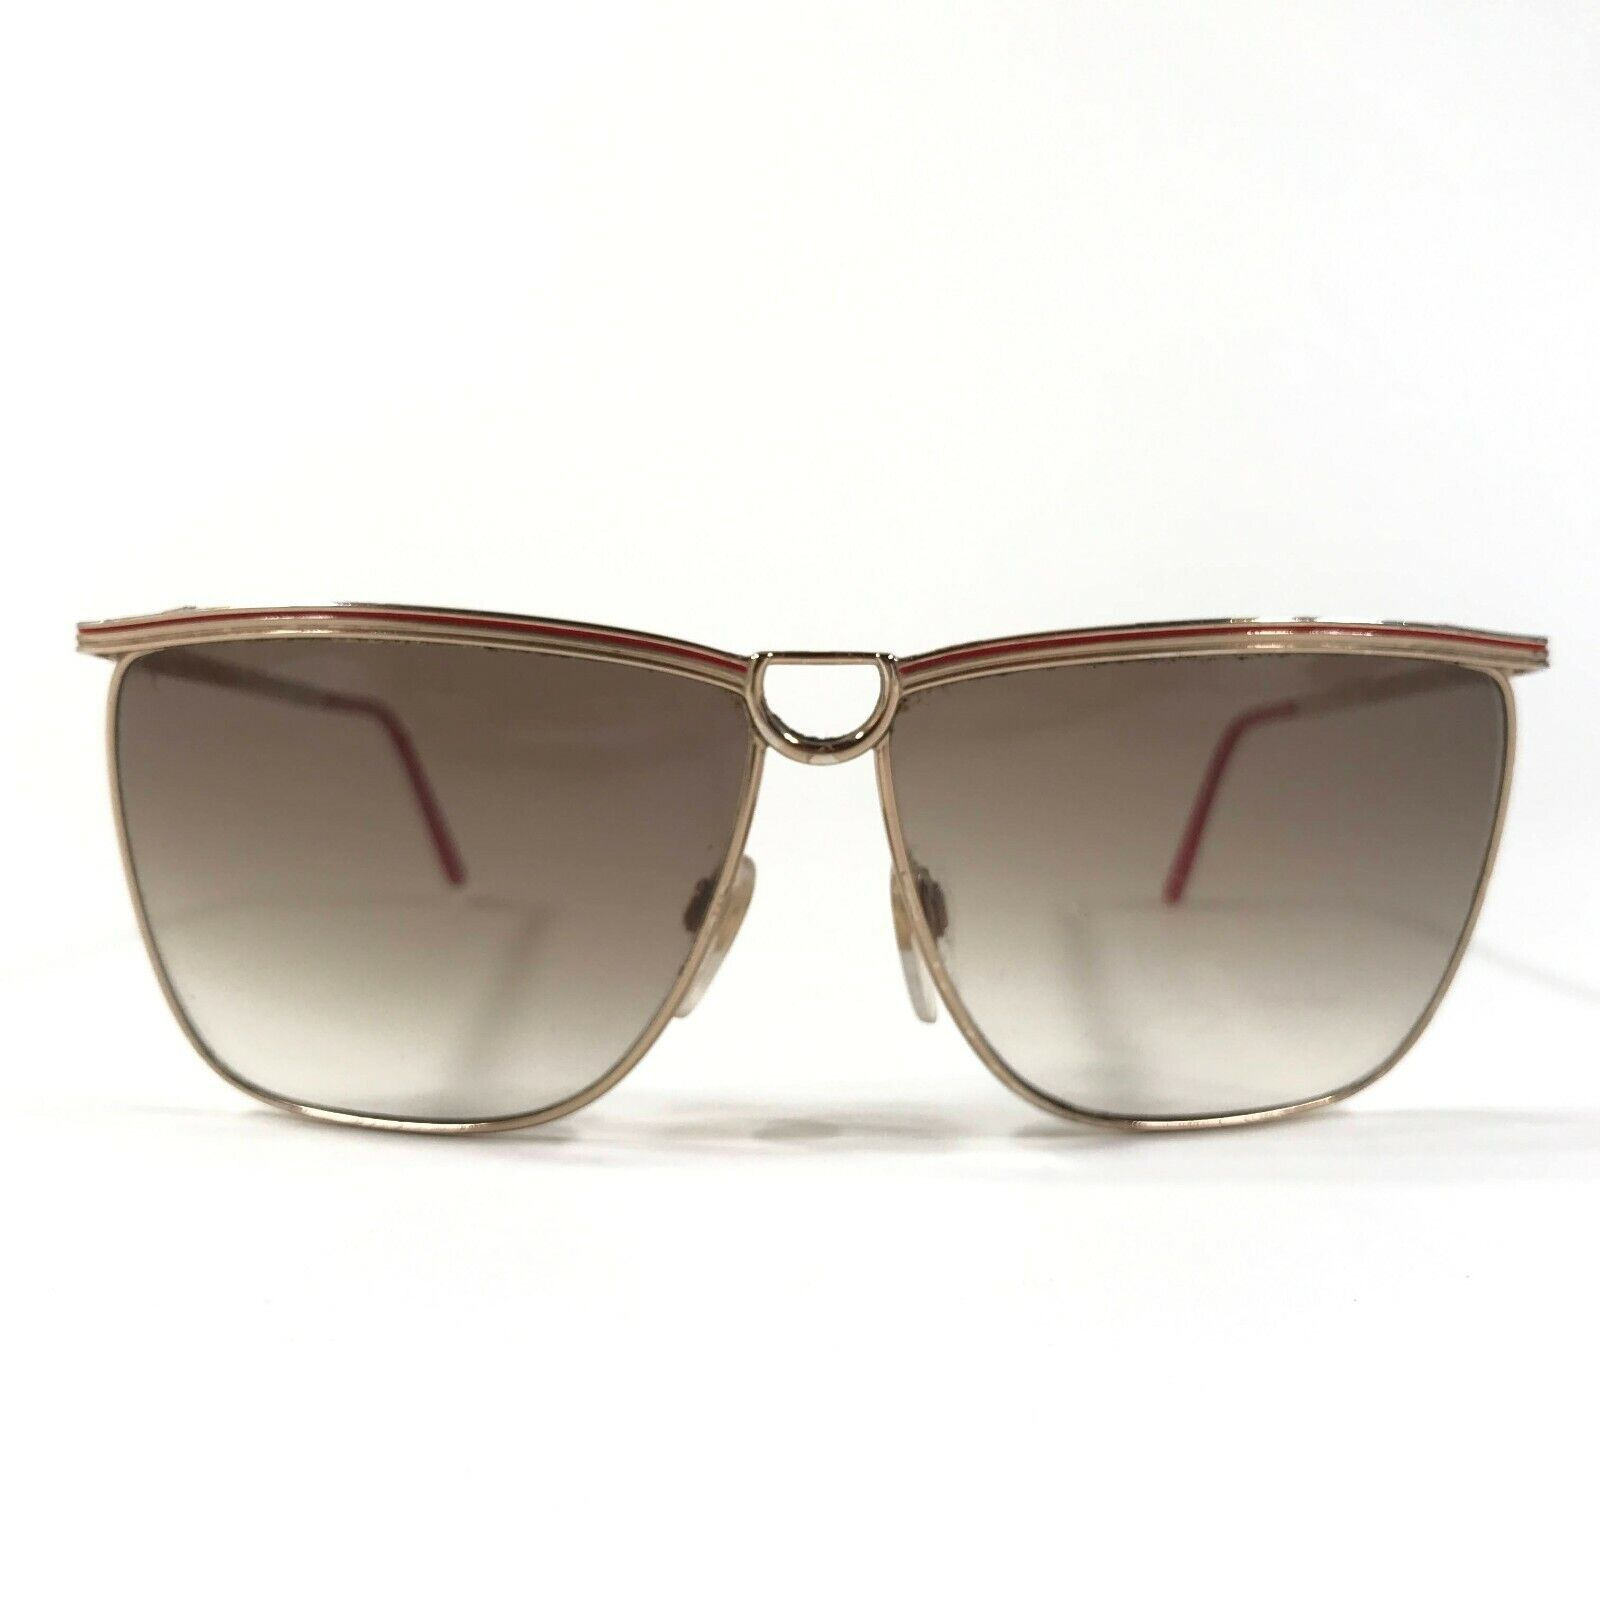 Vintage Gucci Sunglasses 70s 80s Gold Red Logos B… - image 2